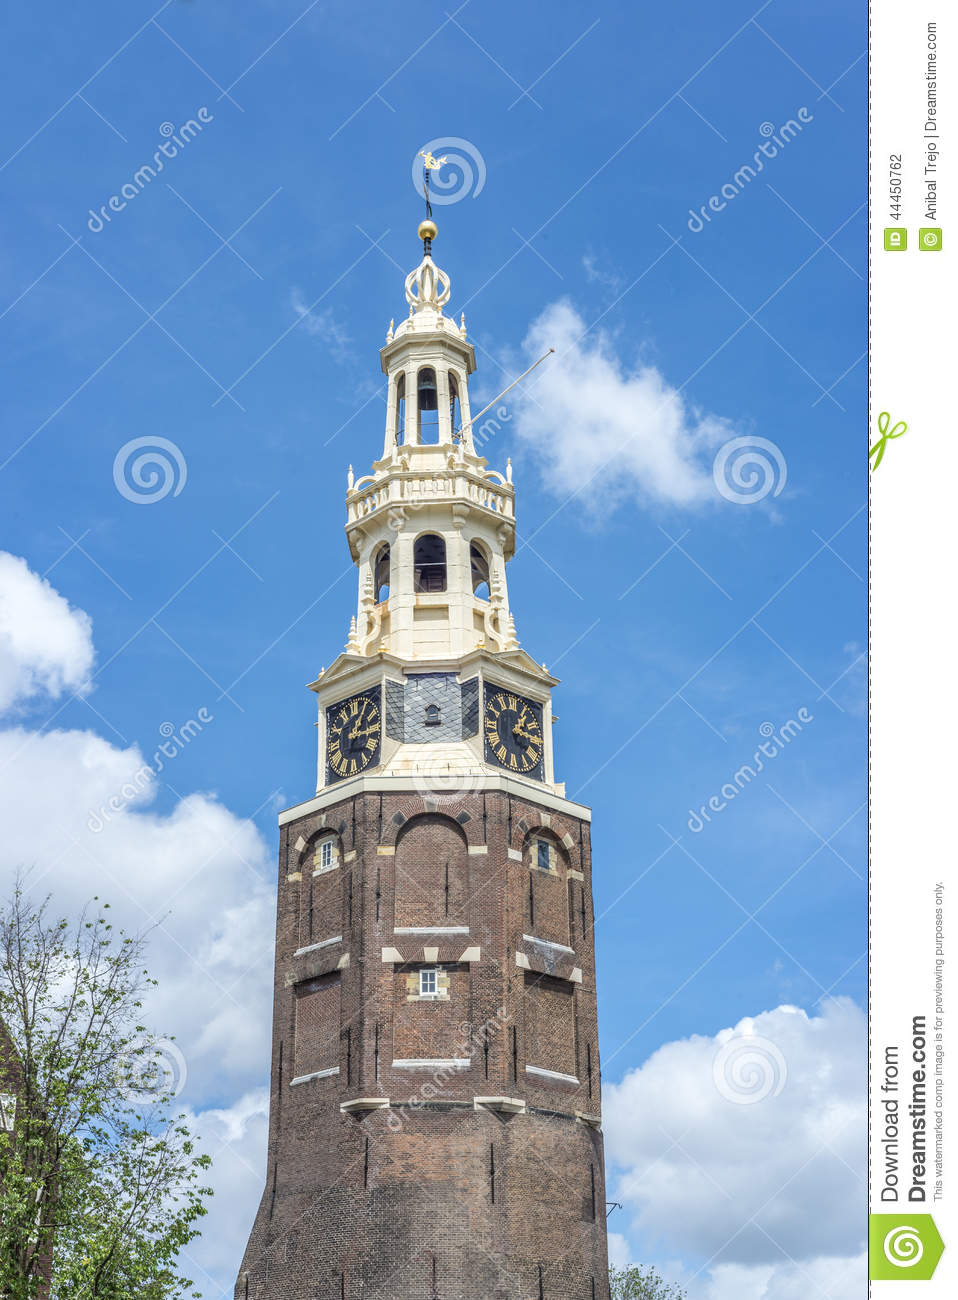 montelbaanstoren turm in amsterdam die niederlande stockfoto bild 44450762. Black Bedroom Furniture Sets. Home Design Ideas